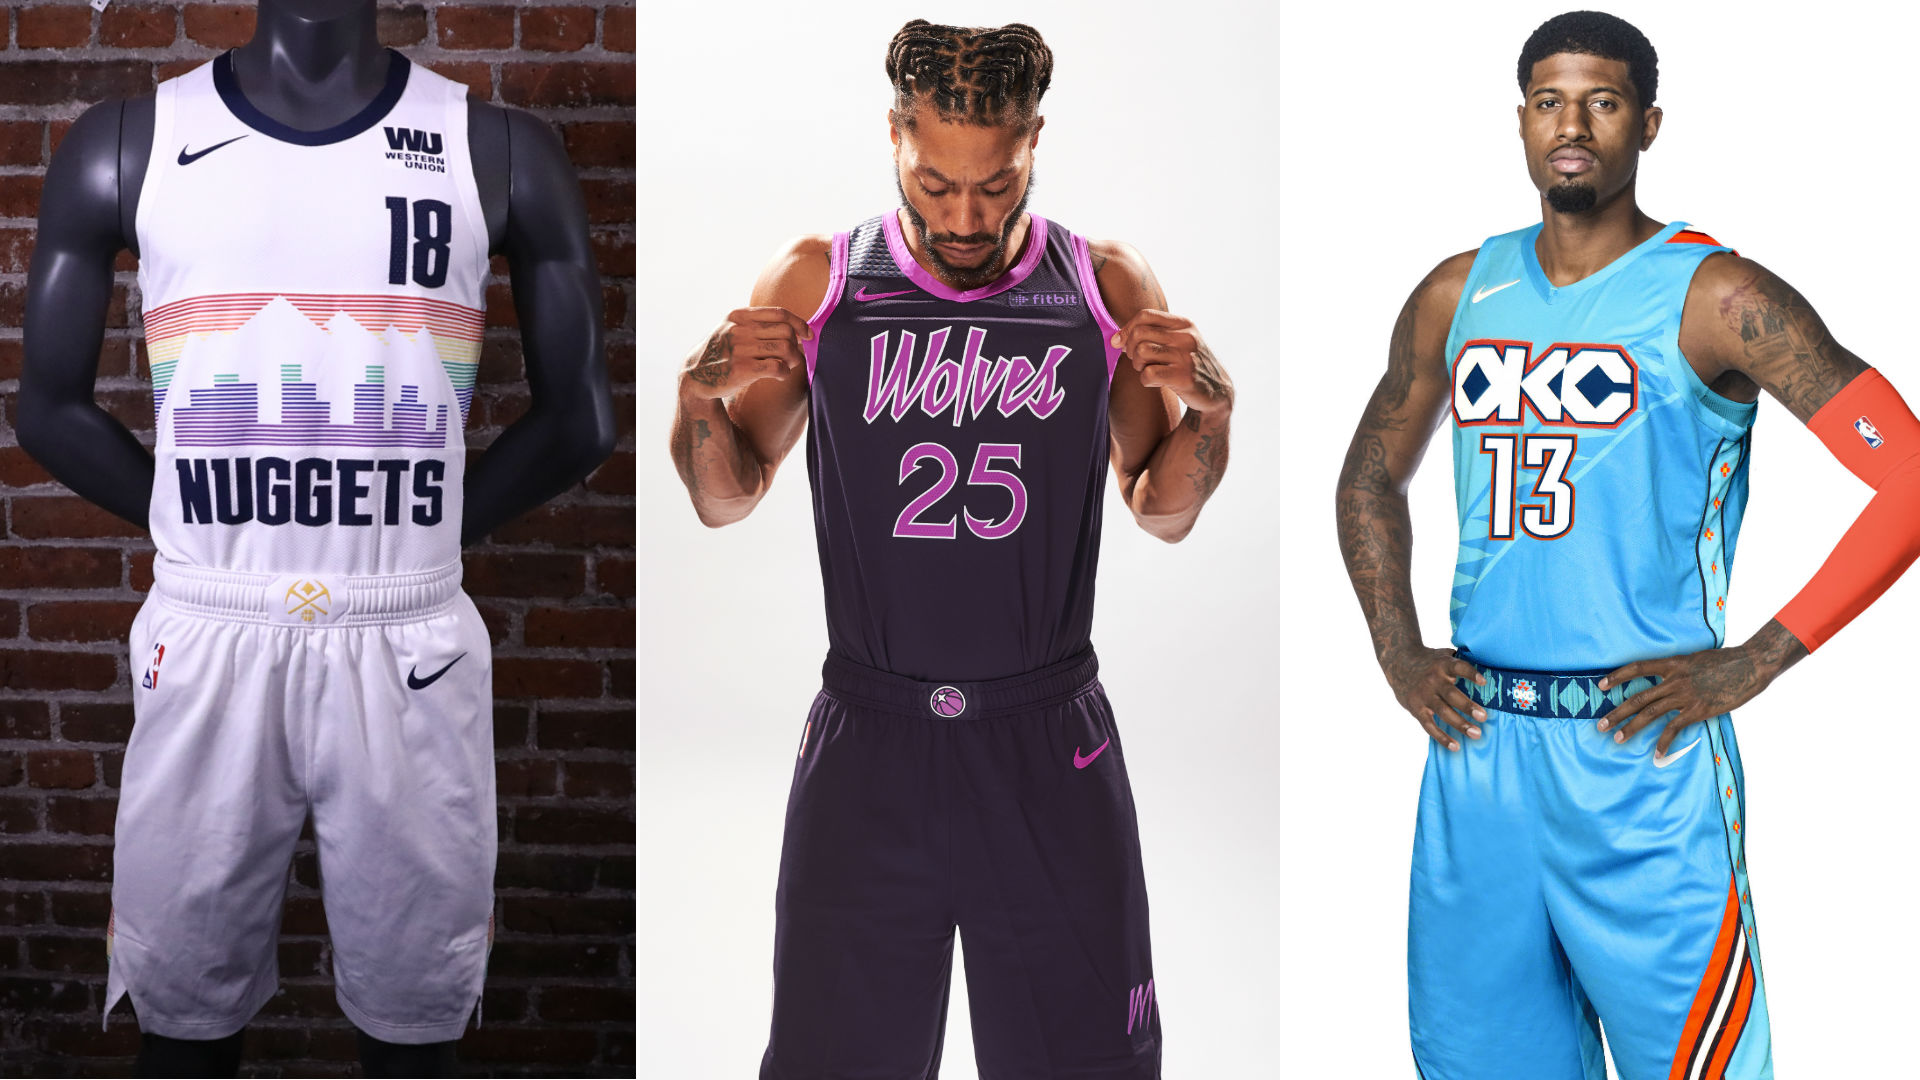 944af93de61 City Edition uniforms  Teams league-wide unveil new looks for 2018 ...